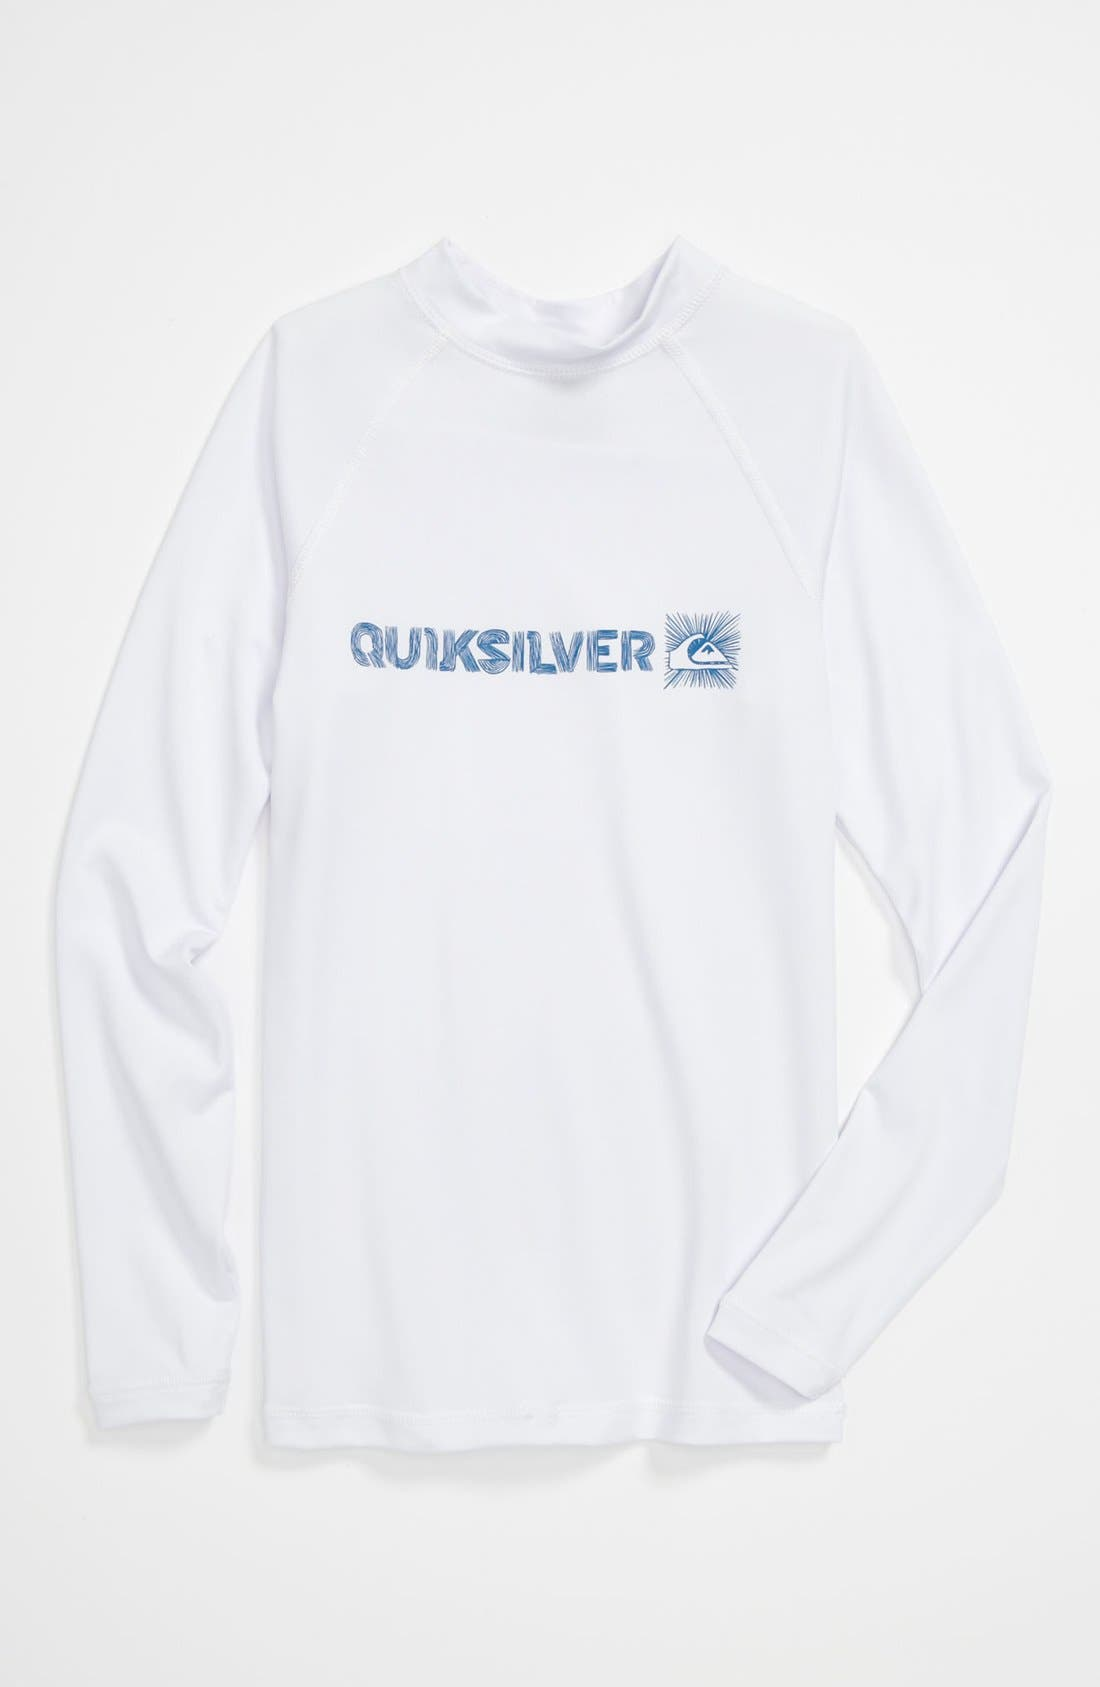 Main Image - Quiksilver 'Phaser' Rashguard (Big Boys)